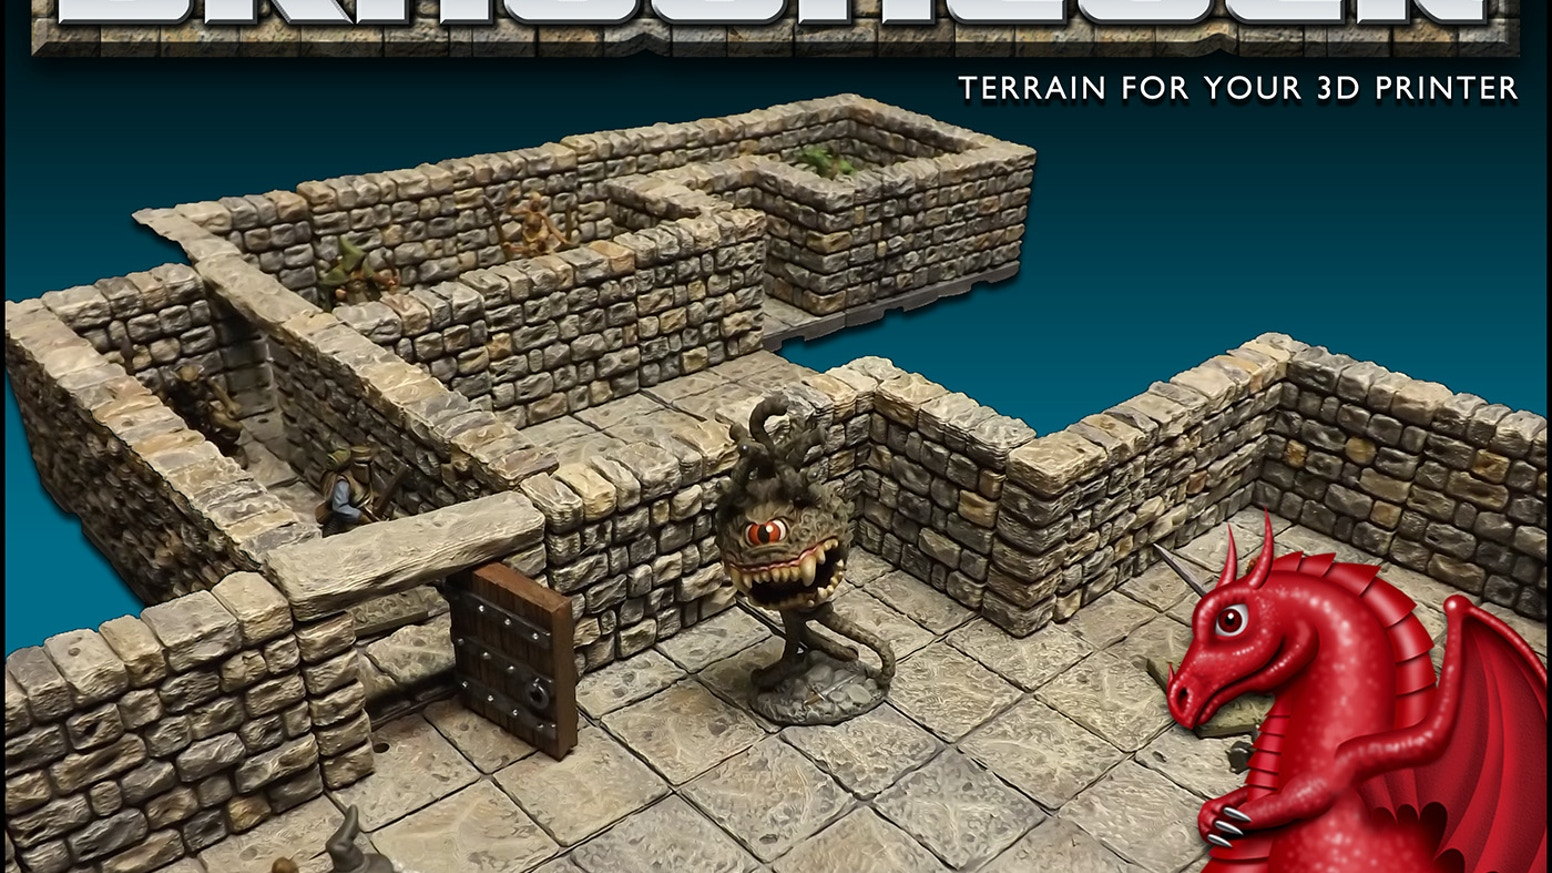 The DRAGONLOCK™ terrain system features dungeon pieces that snap together and can be stacked to create multi-level dungeon designs.